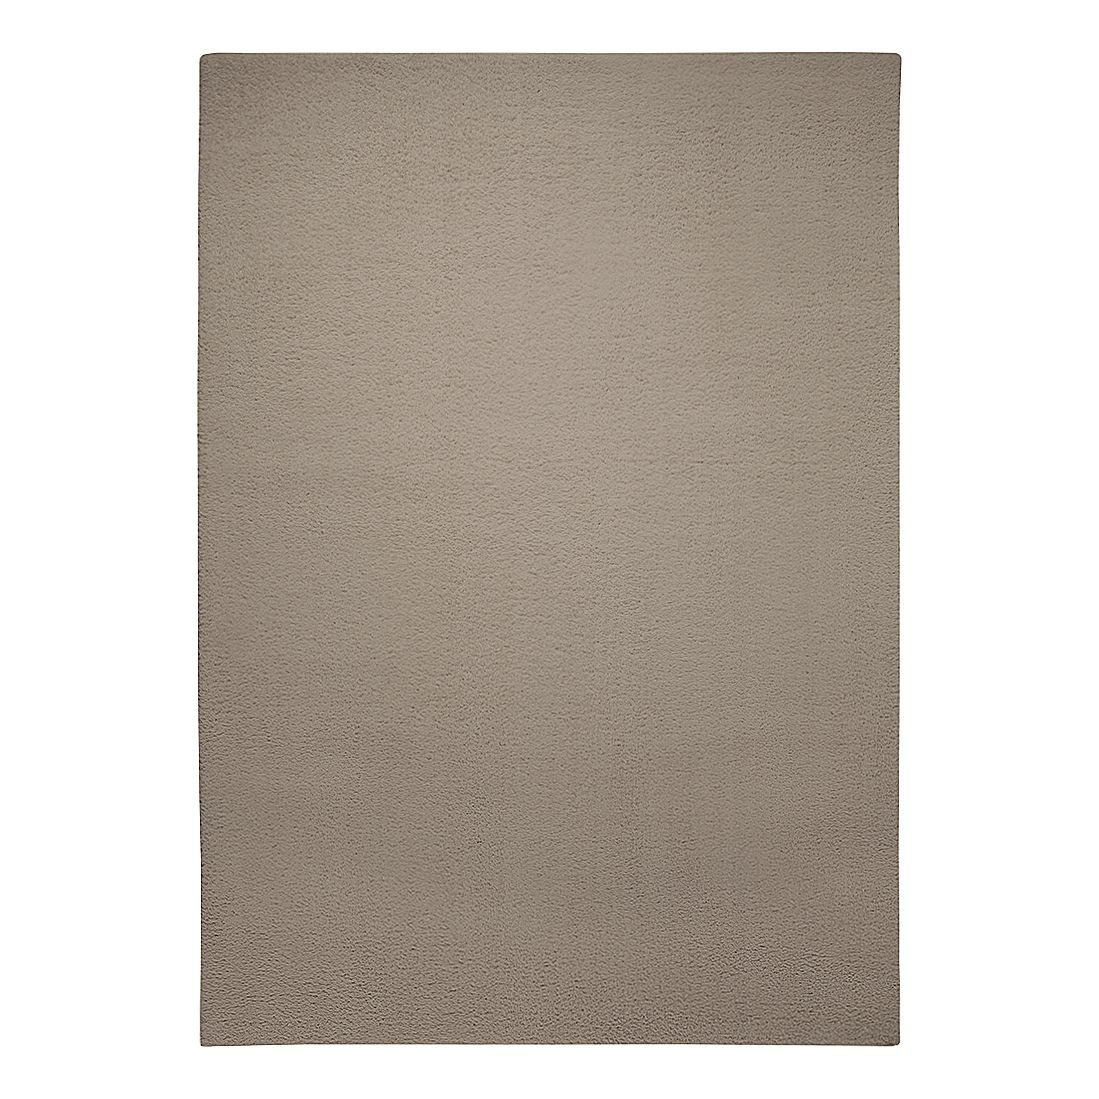 Home 24 - Tapis chill glamour - fibres synthétiques - sable - 120 x 170 cm, esprit home